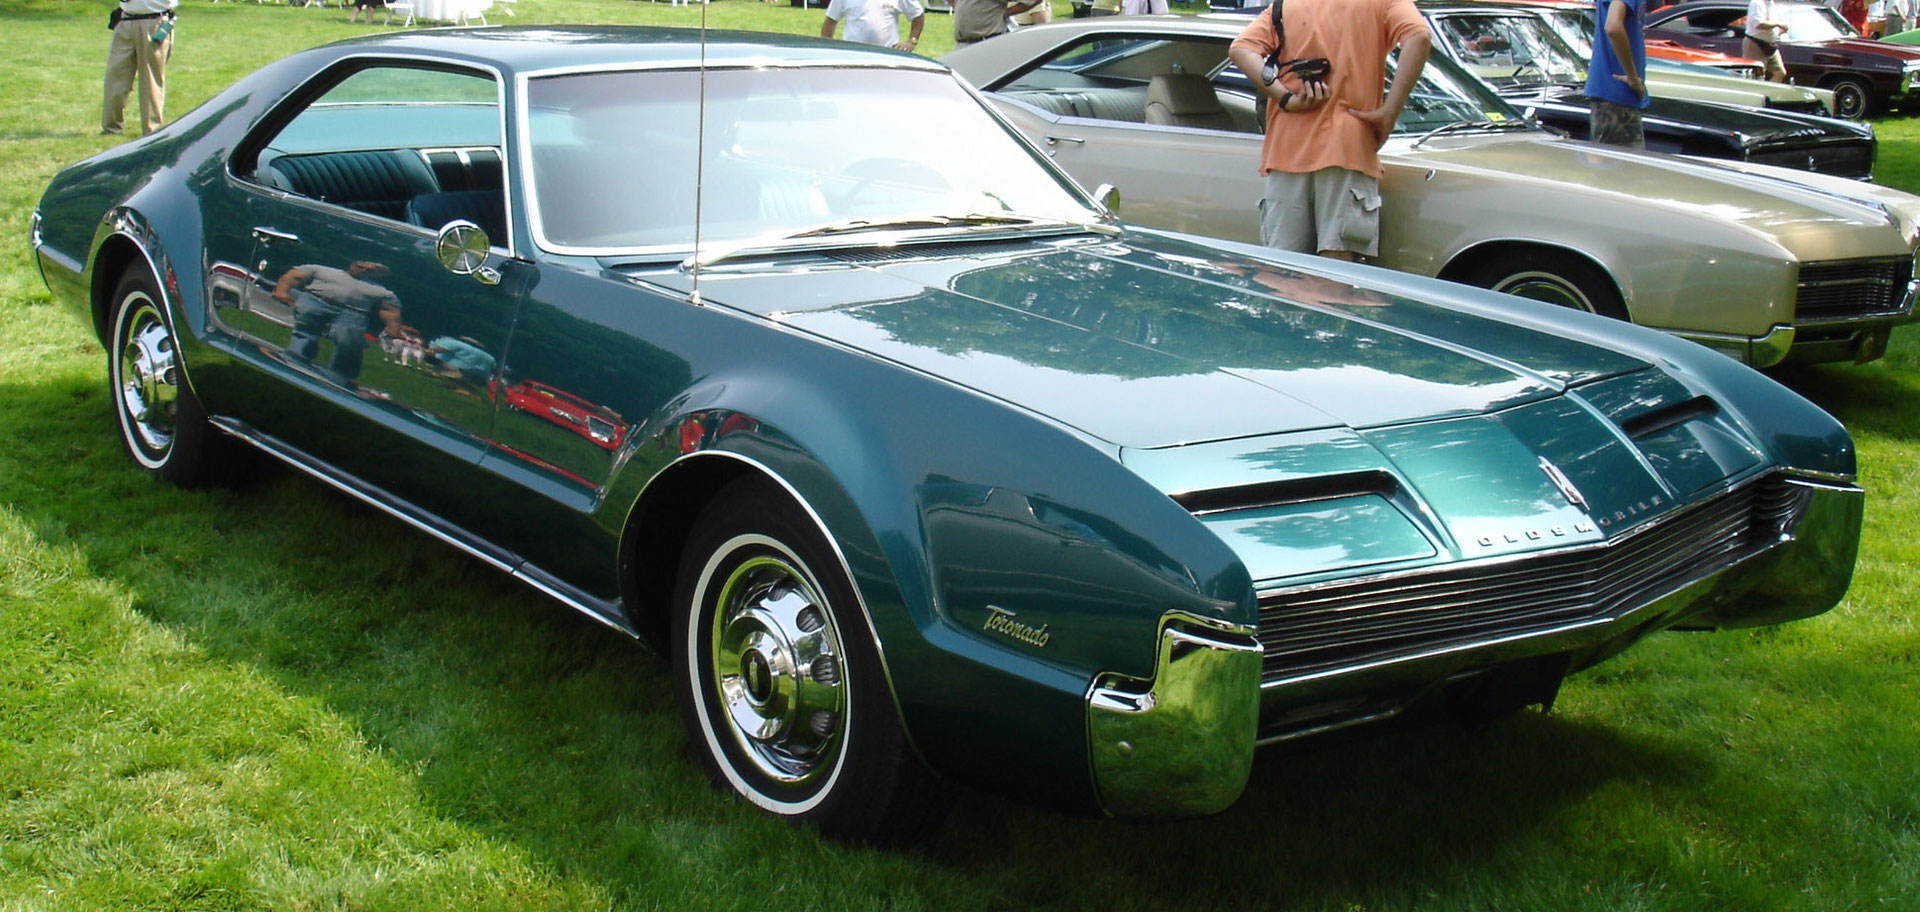 69 Oldsmobile Pdf Manuals Download For Free Ar Manual Body Wiring Diagram 1942 Chevrolet Two And Four Door Sedans Fault Codes